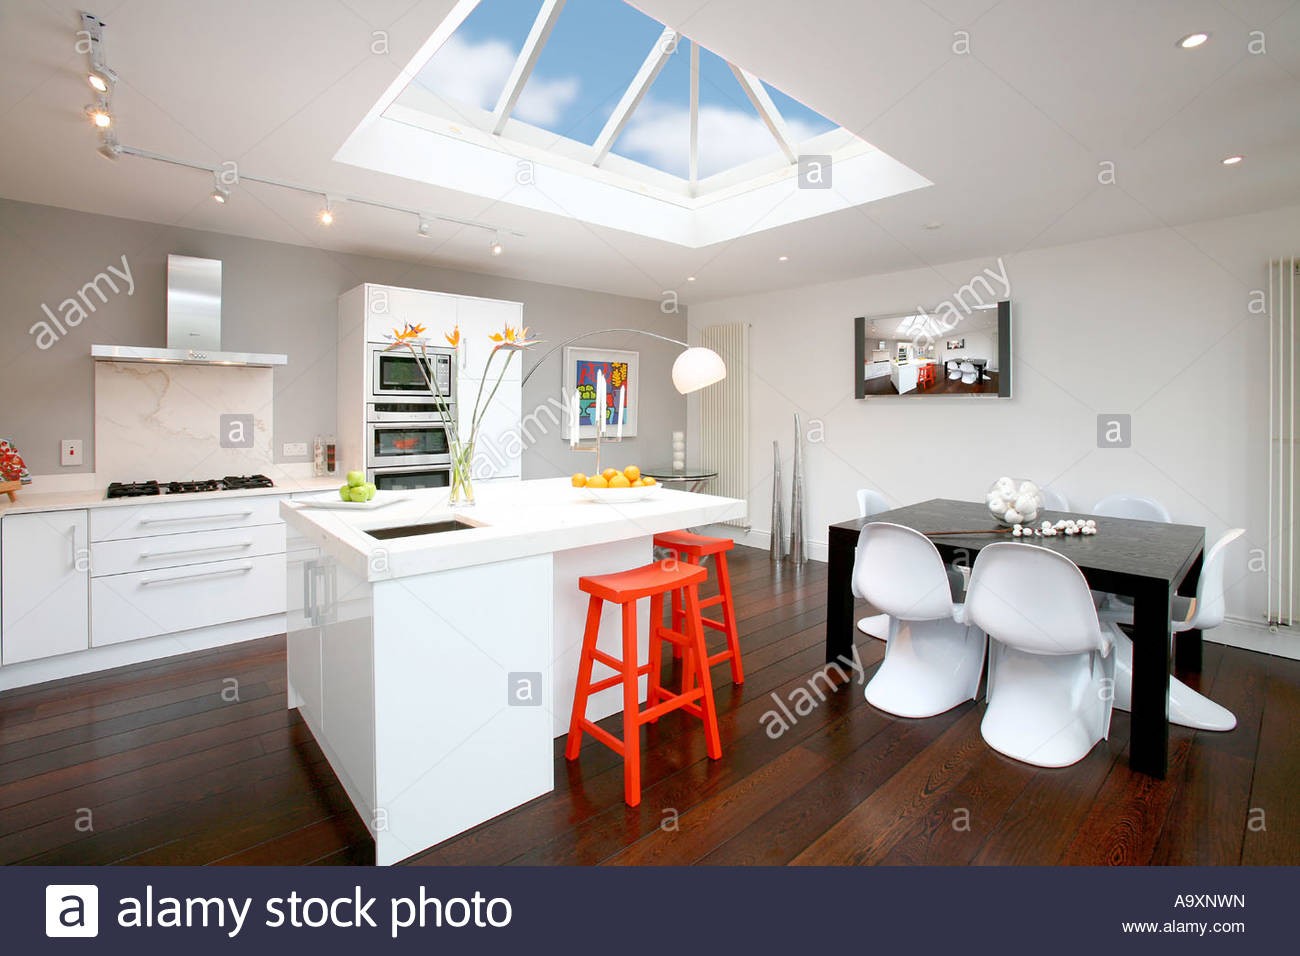 Modern kitchen with atrium skylight window stock photo for Where to buy atrium windows